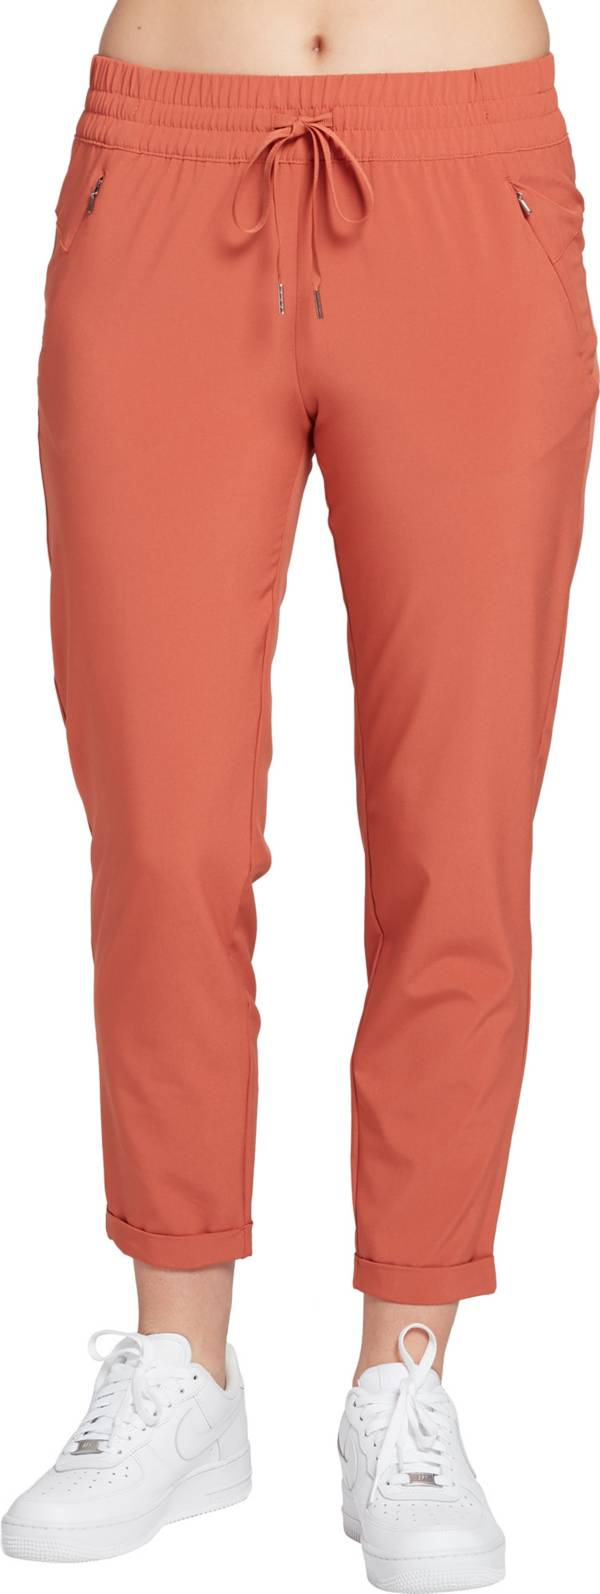 CALIA by Carrie Underwood Women's Journey Woven Pants product image